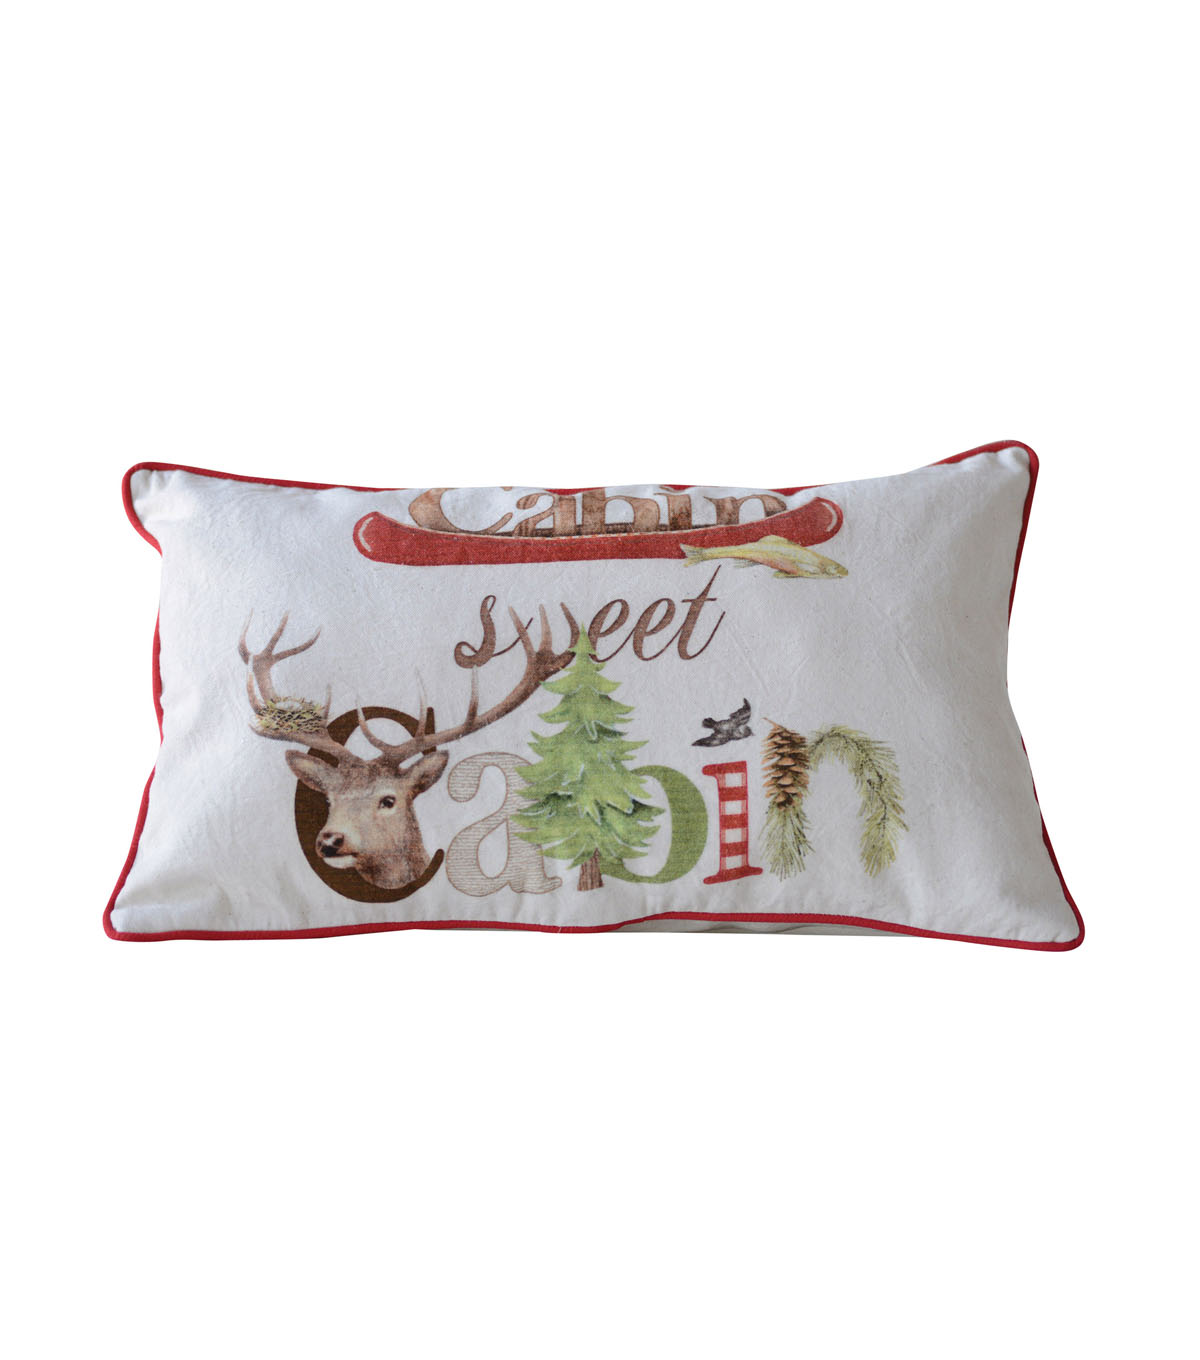 Christmas Cotton Pillow-Cabin Sweet Cabin